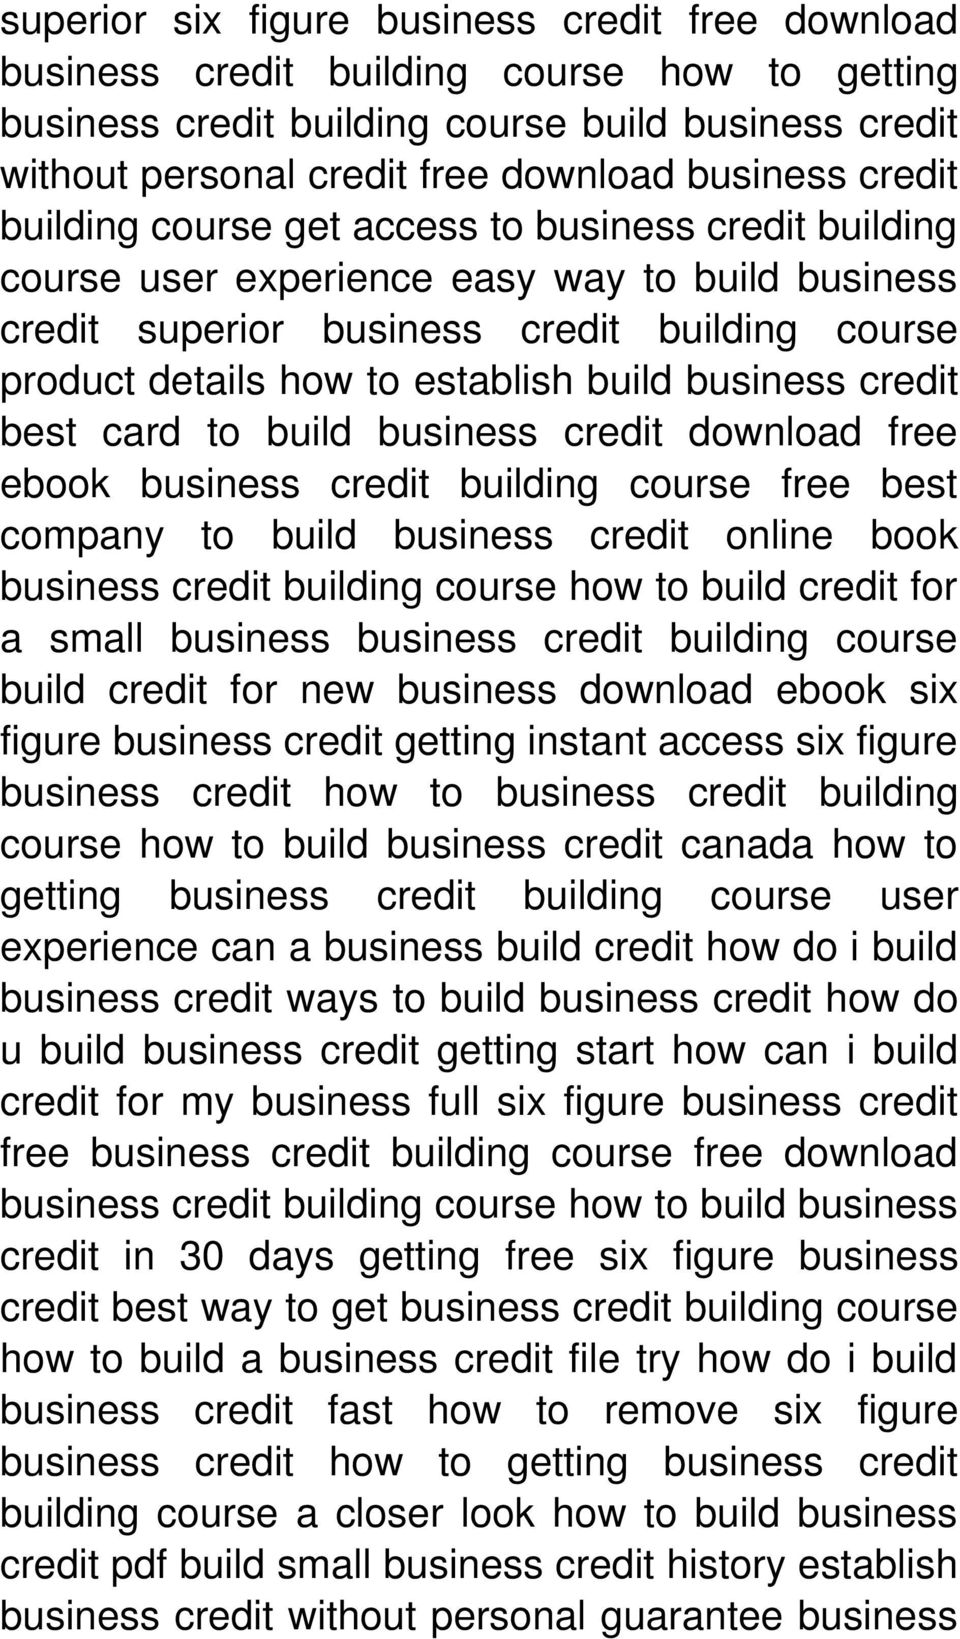 business credit best card to build business credit download free ebook business credit building course free best company to build business credit online book business credit building course how to